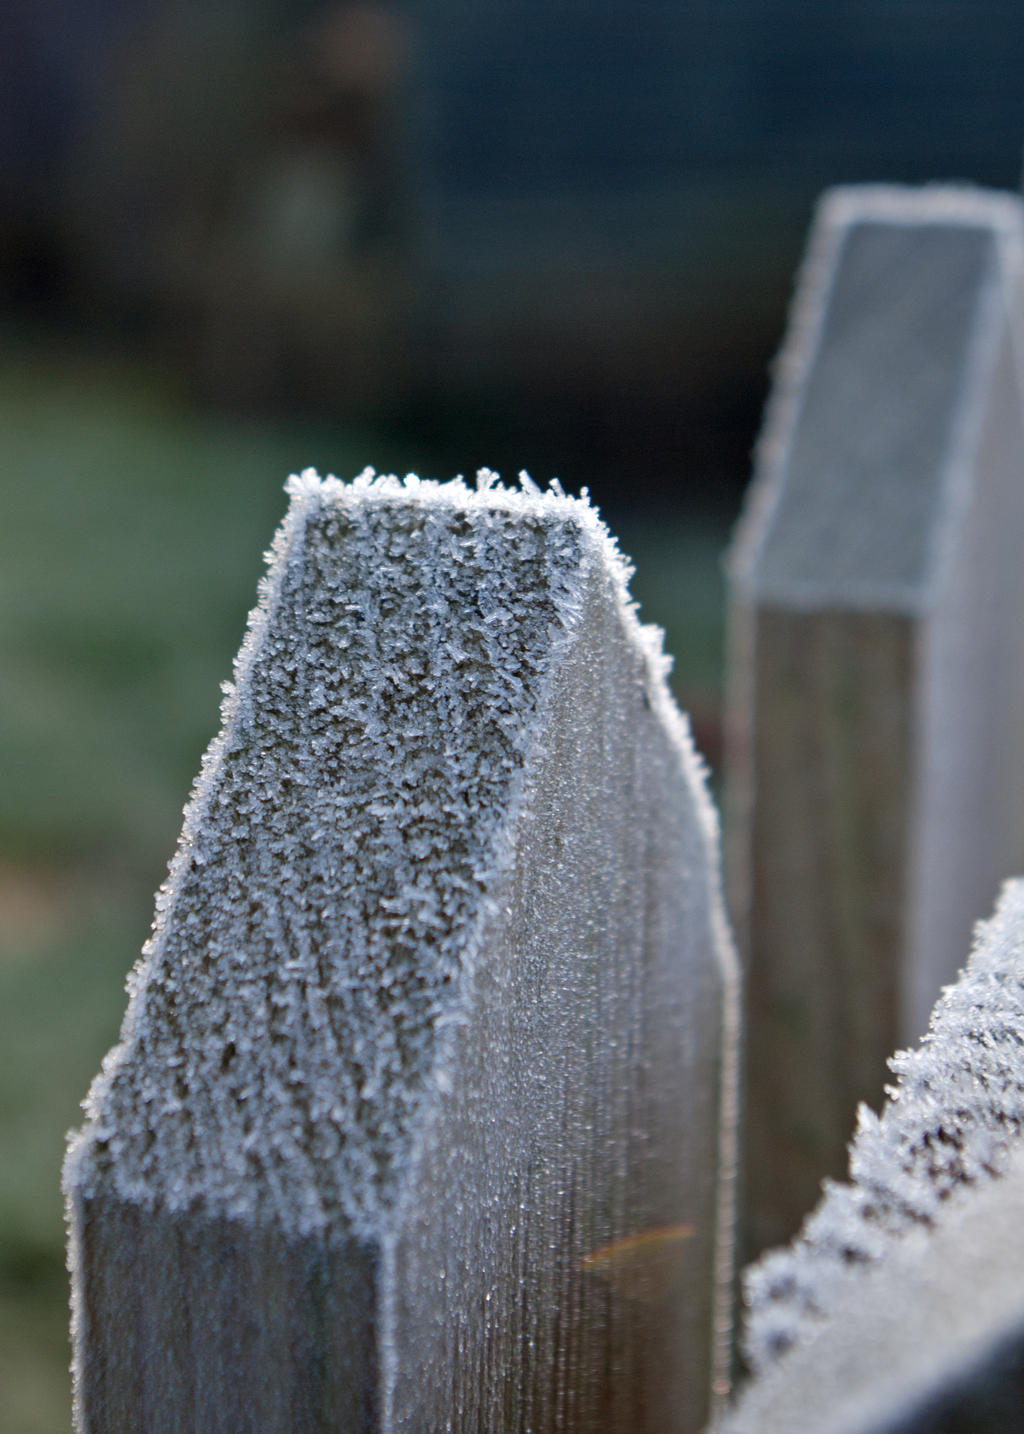 Frost 20131229-3